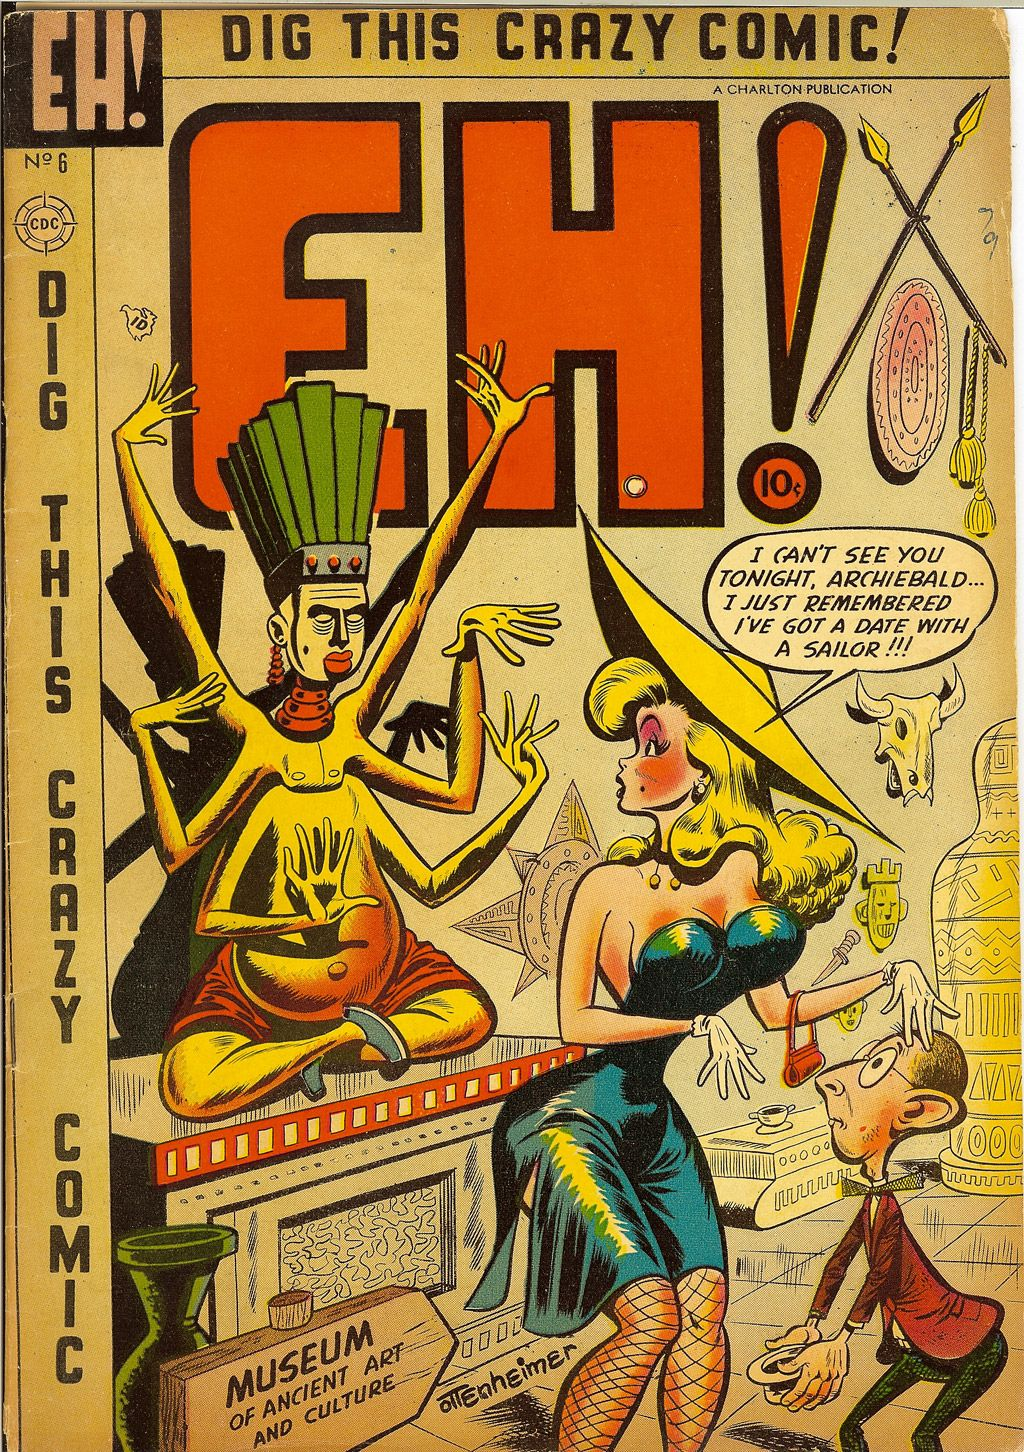 Download 15 000 Free Golden Age Comics From The Digital Comic Museum Old Comic Books Golden Age Comics Vintage Comics